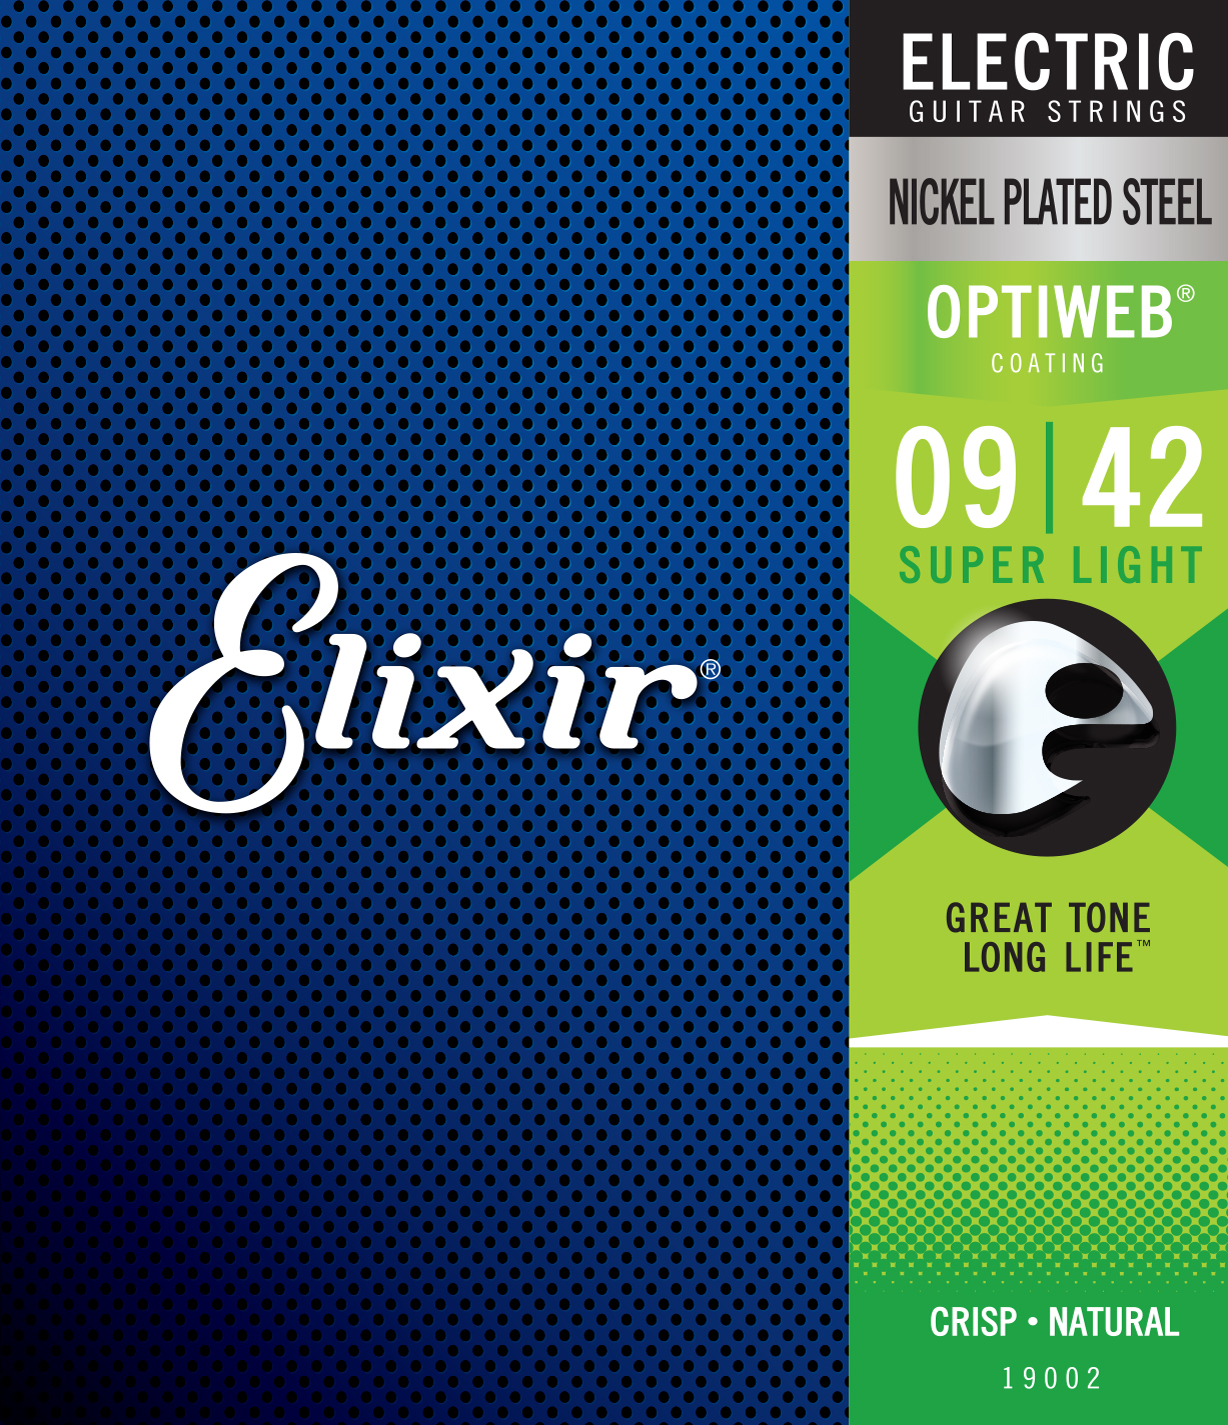 Elixir String Electric Nickel Plated Steel Strings With OPTIWEB Coating, ALL Model